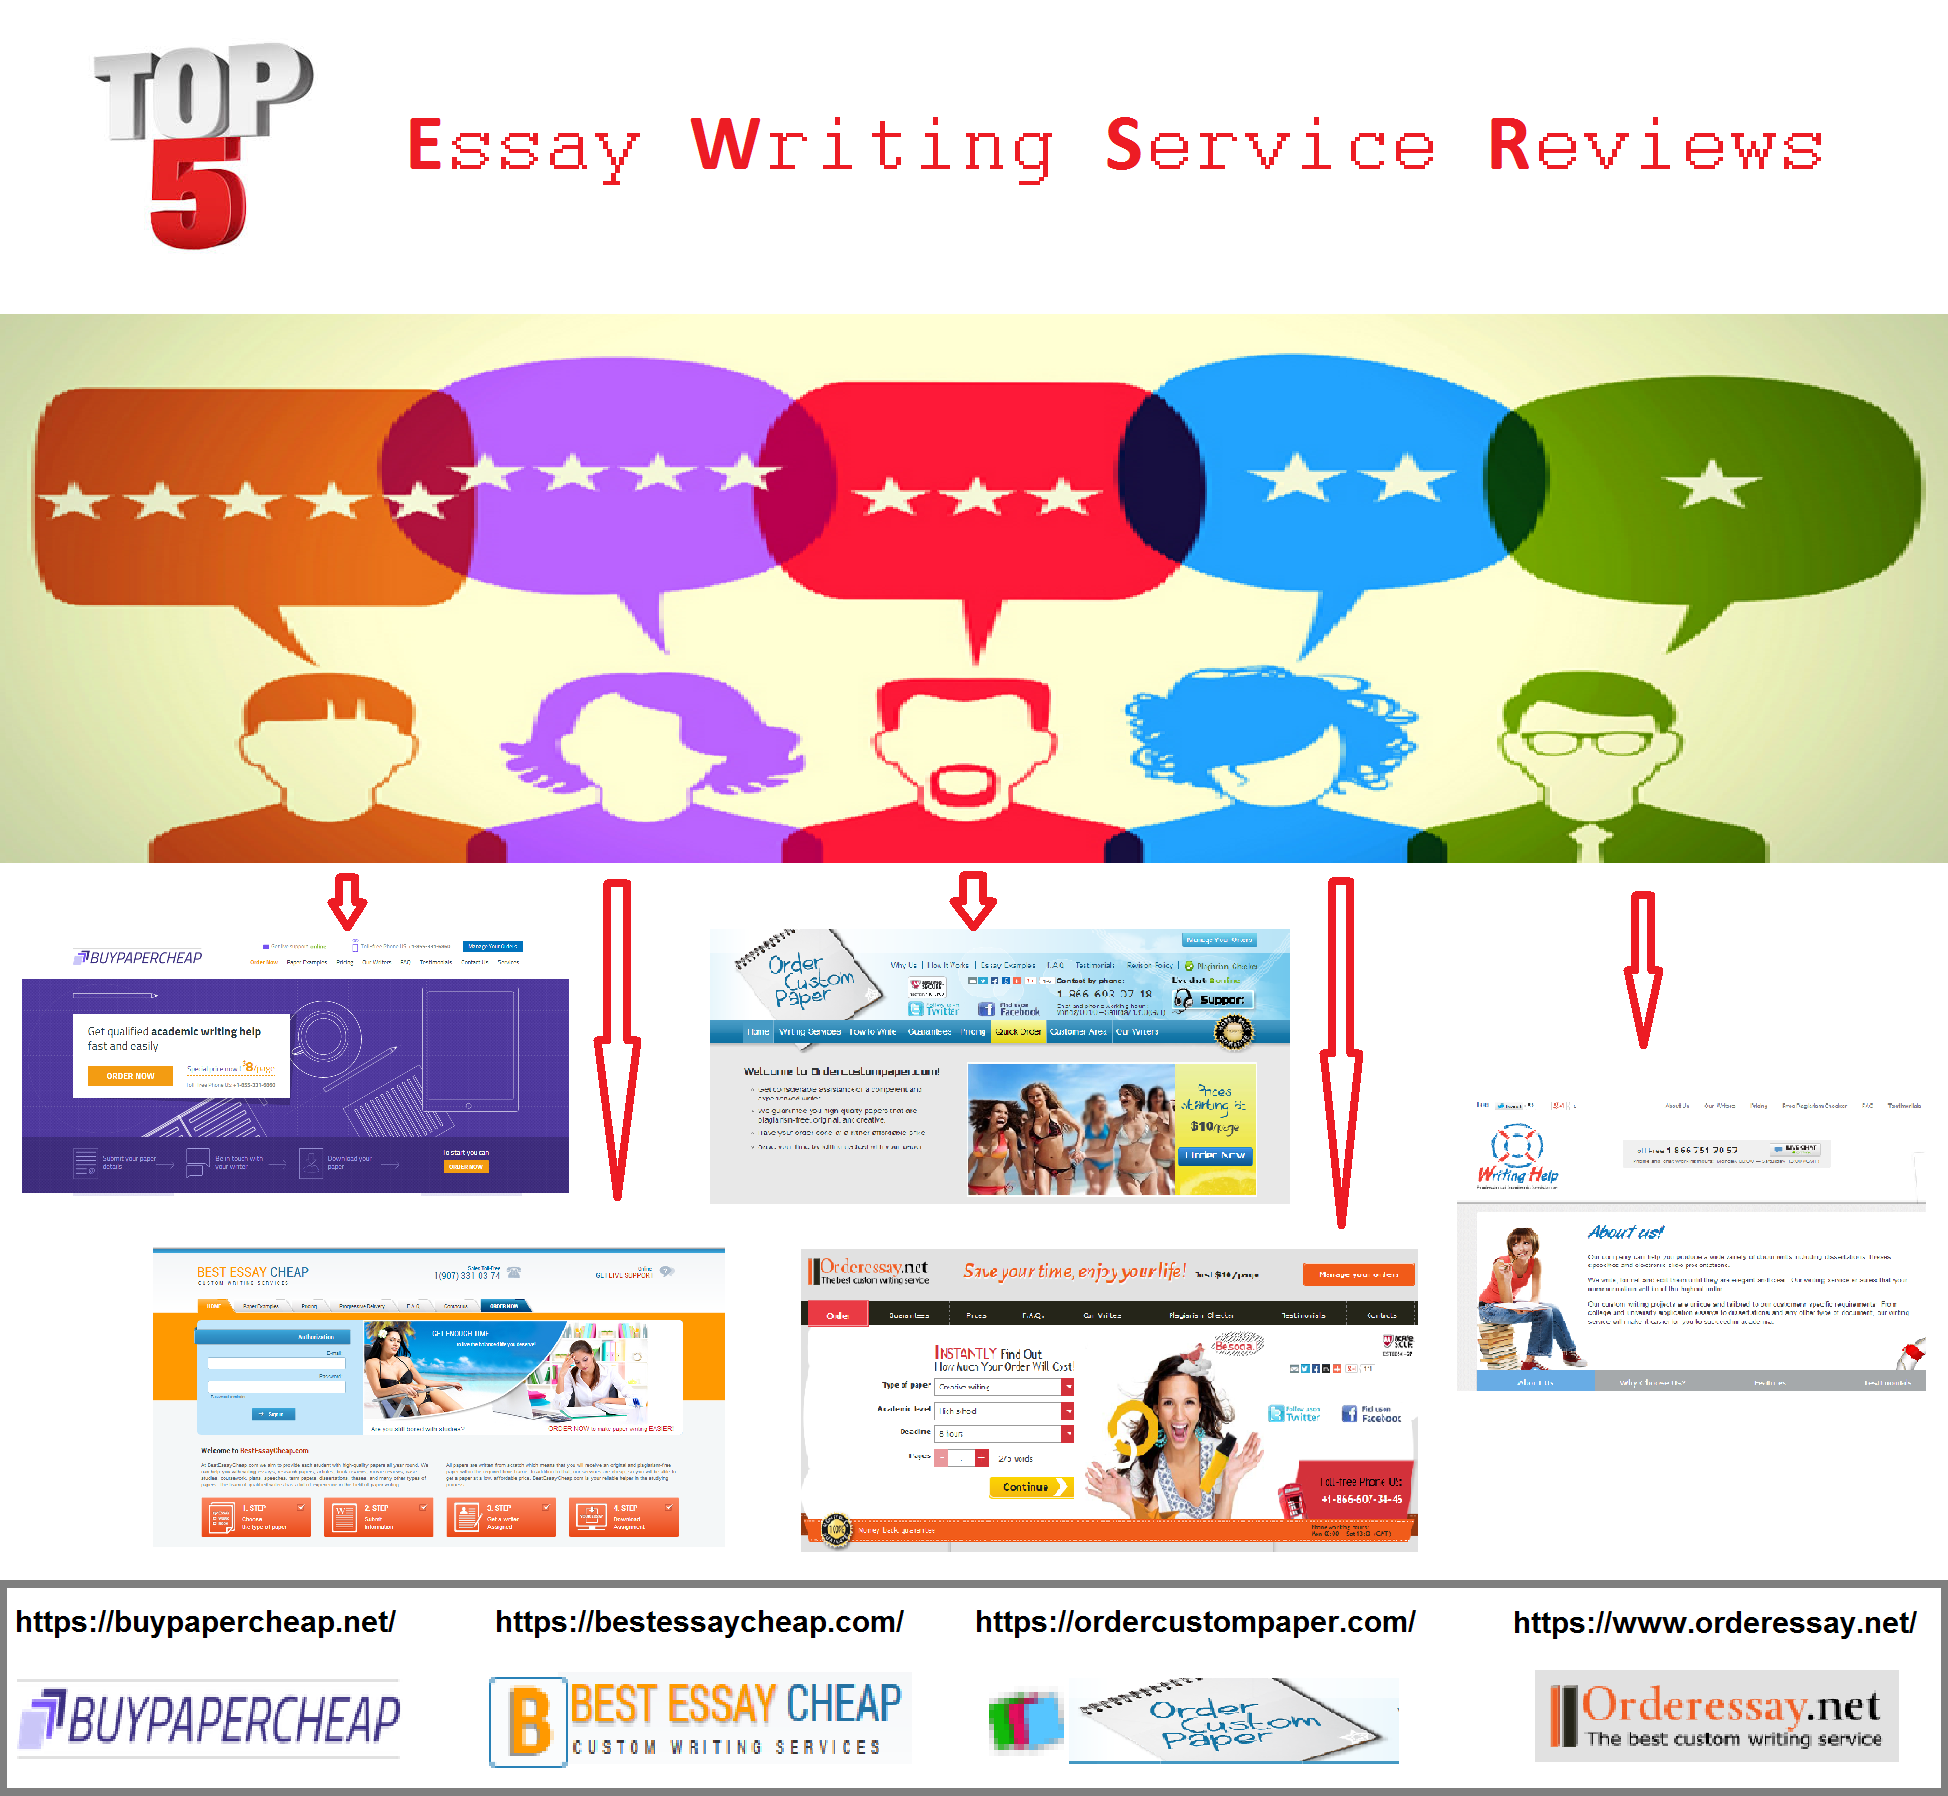 best term paper writing service reviews Essay writing service reviews without empty words essayviewercom provides only proof facts about all best and cheap paper companies check top list sites now.